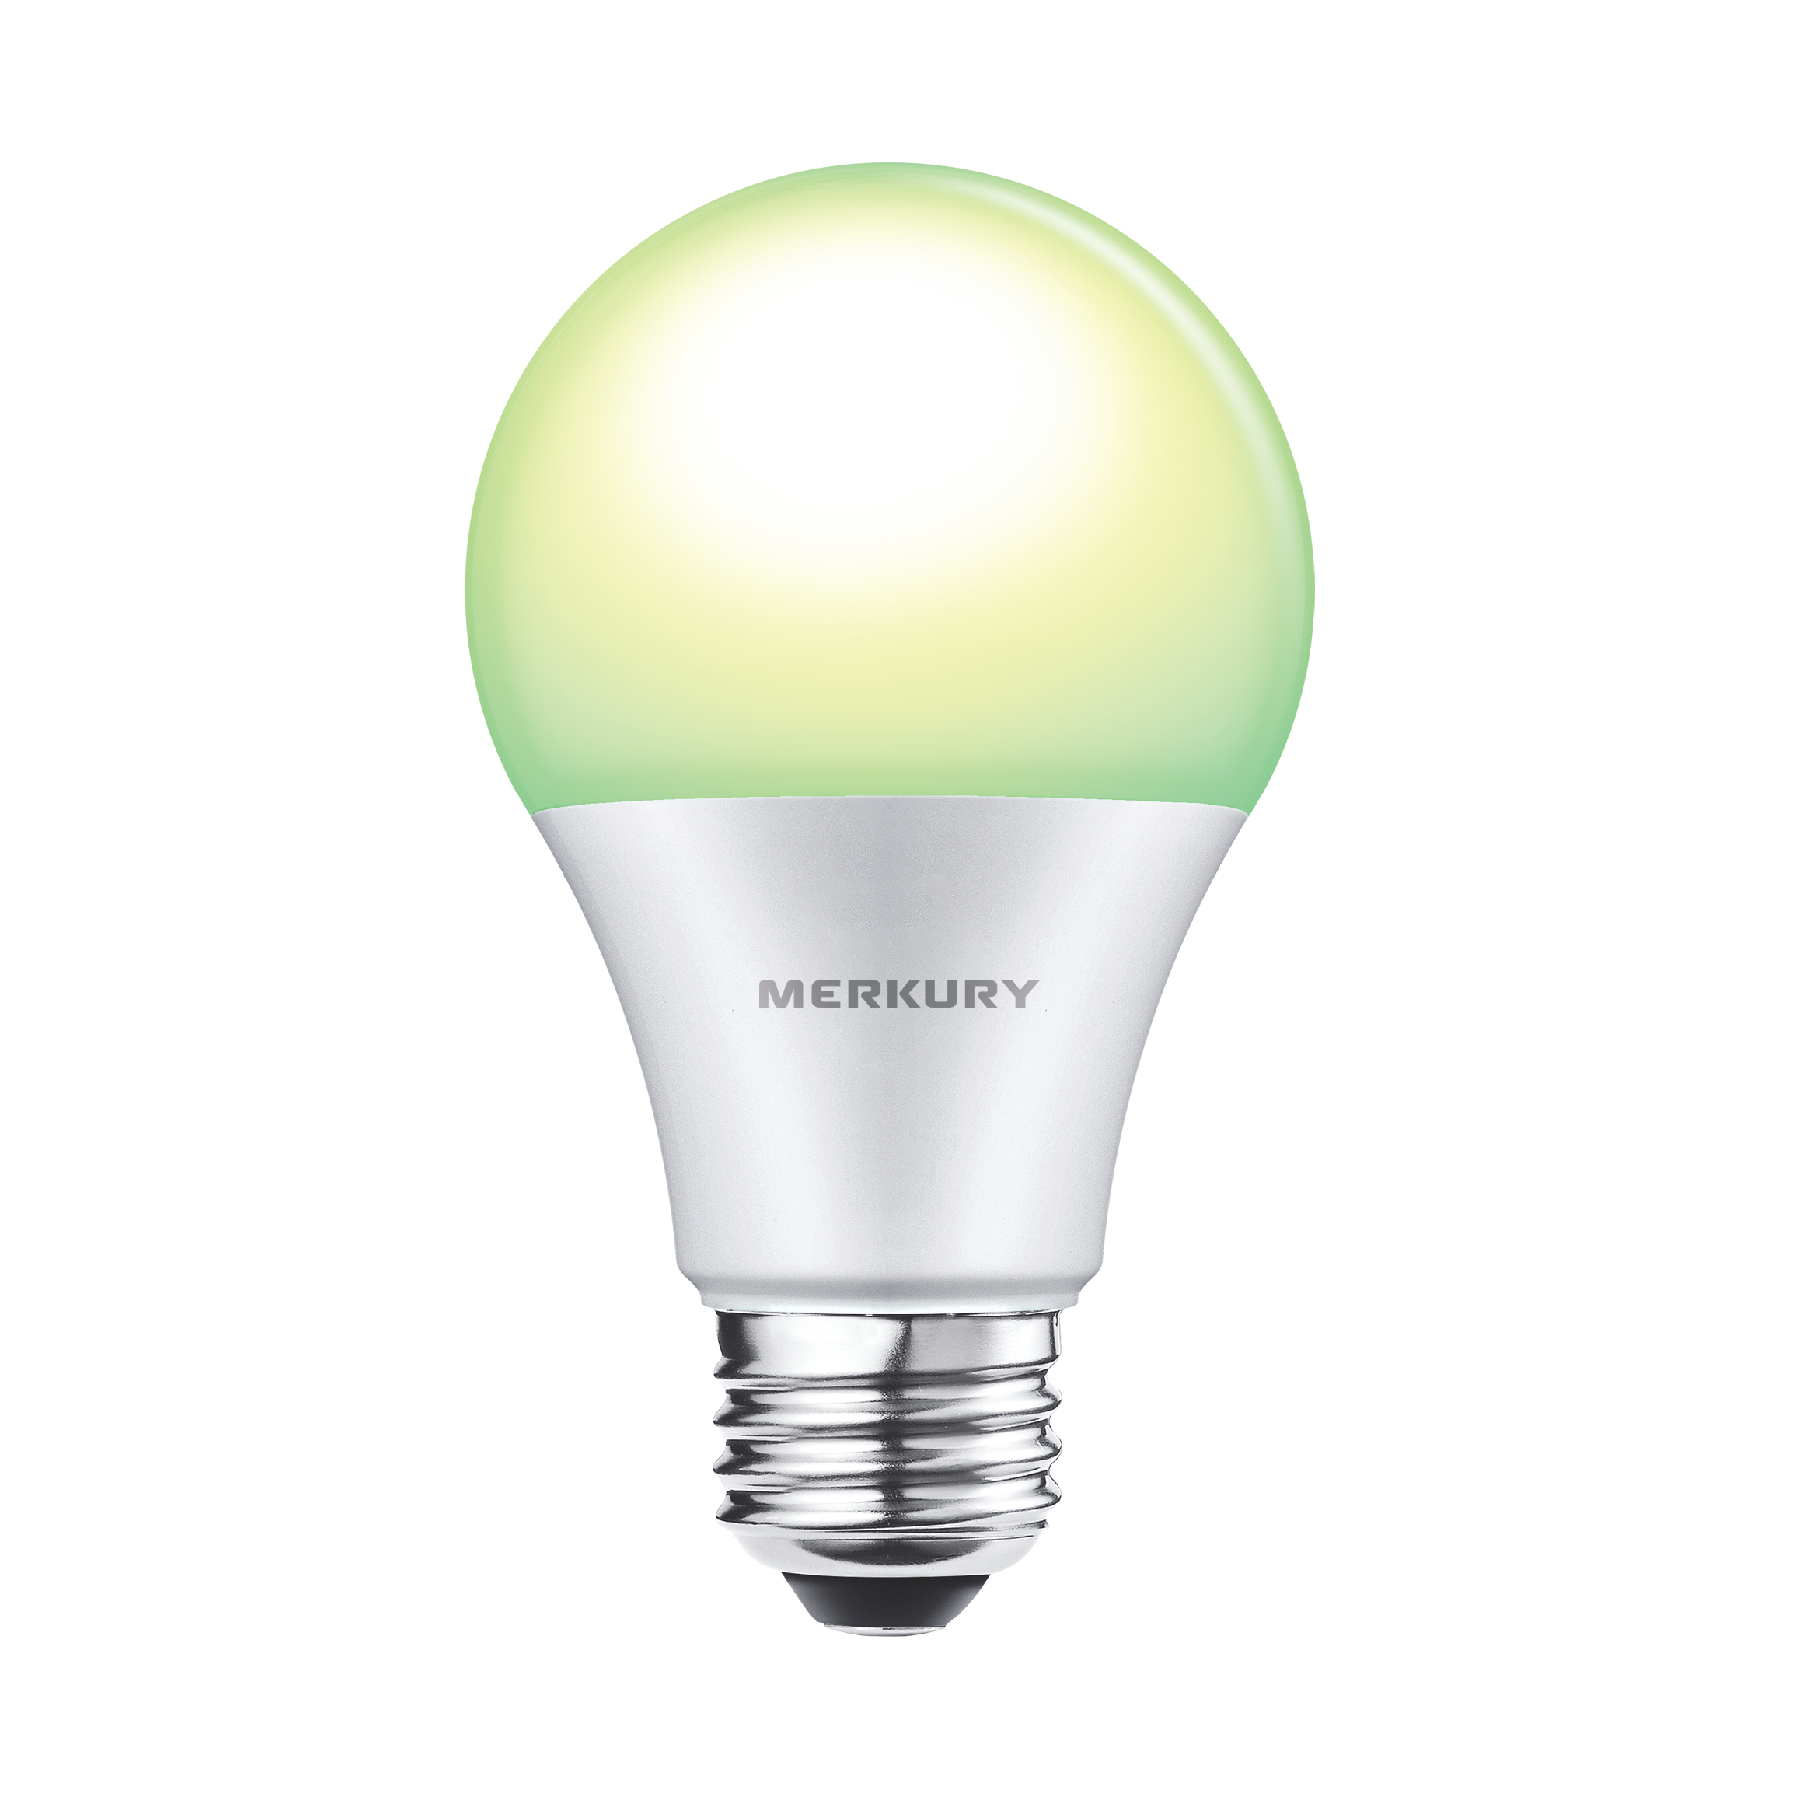 Merkury Innovations Color Smart A21 Light Bulb, 75W Equivalent, No Hub  Required